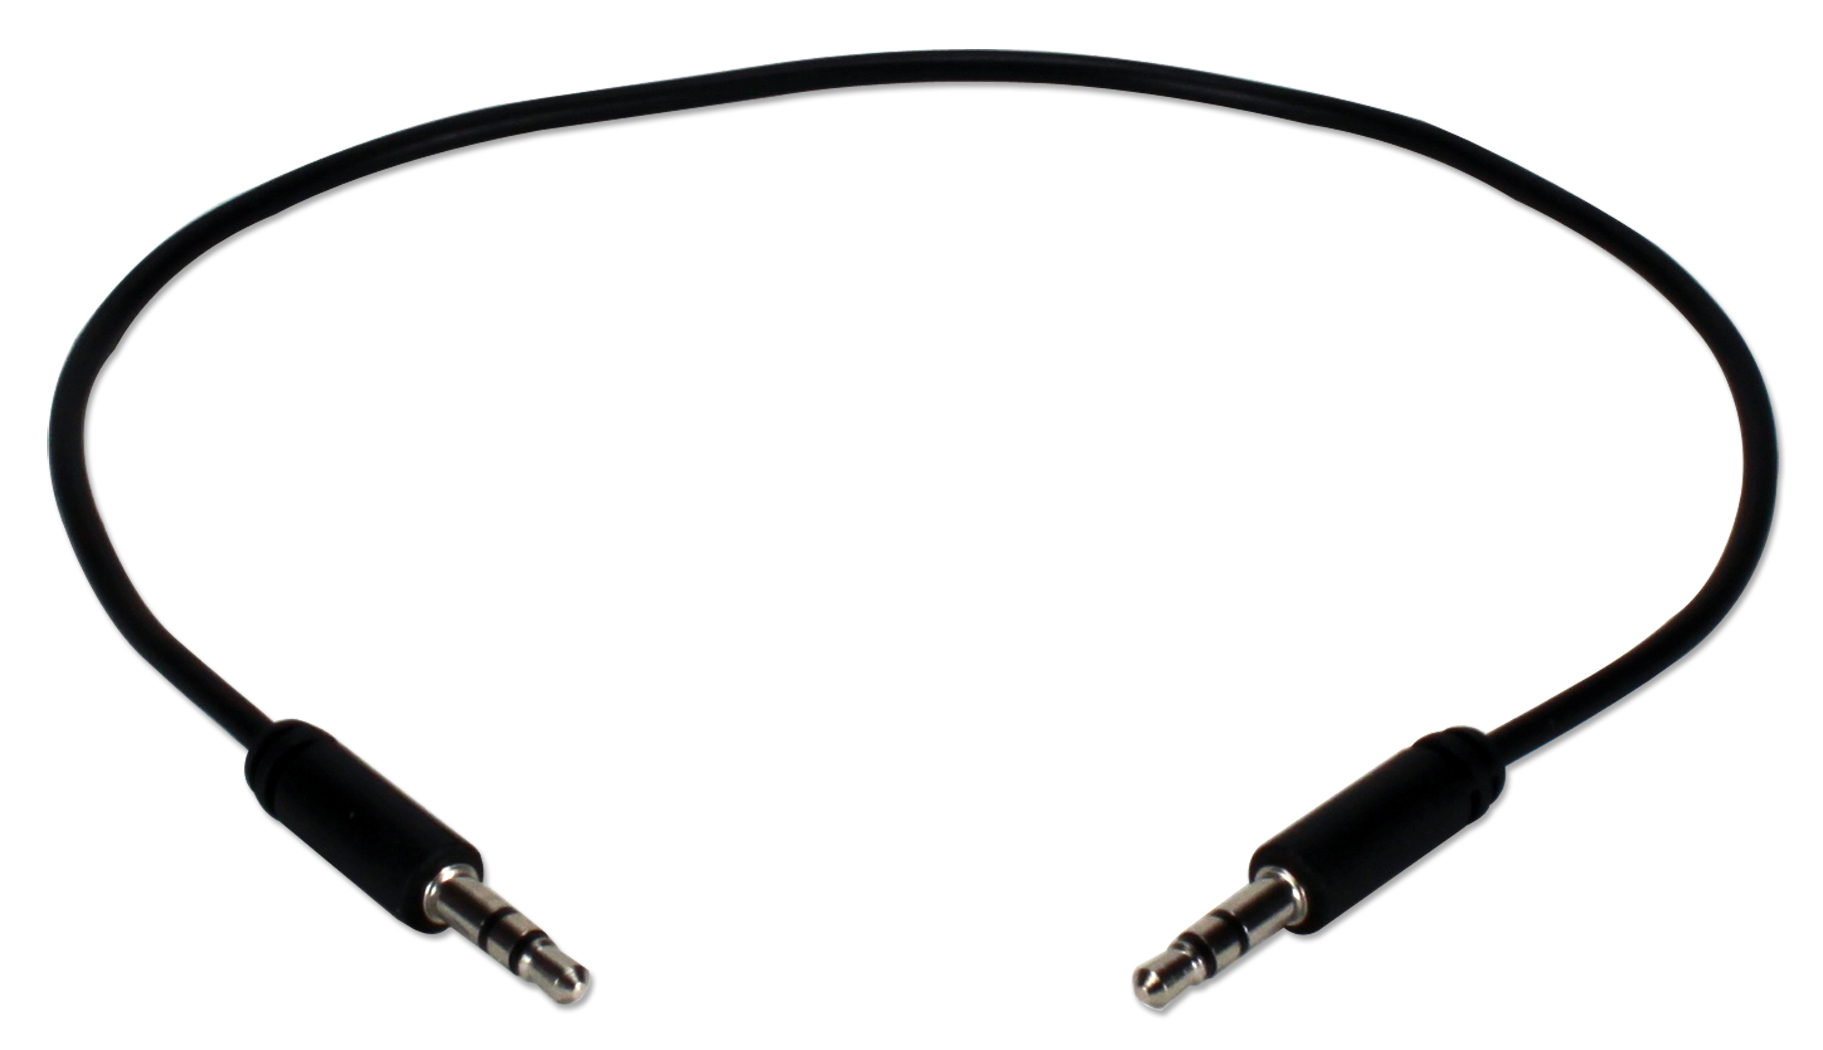 Qvs 1ft 3 5mm Mini Stereo Male To Male Speaker Cable